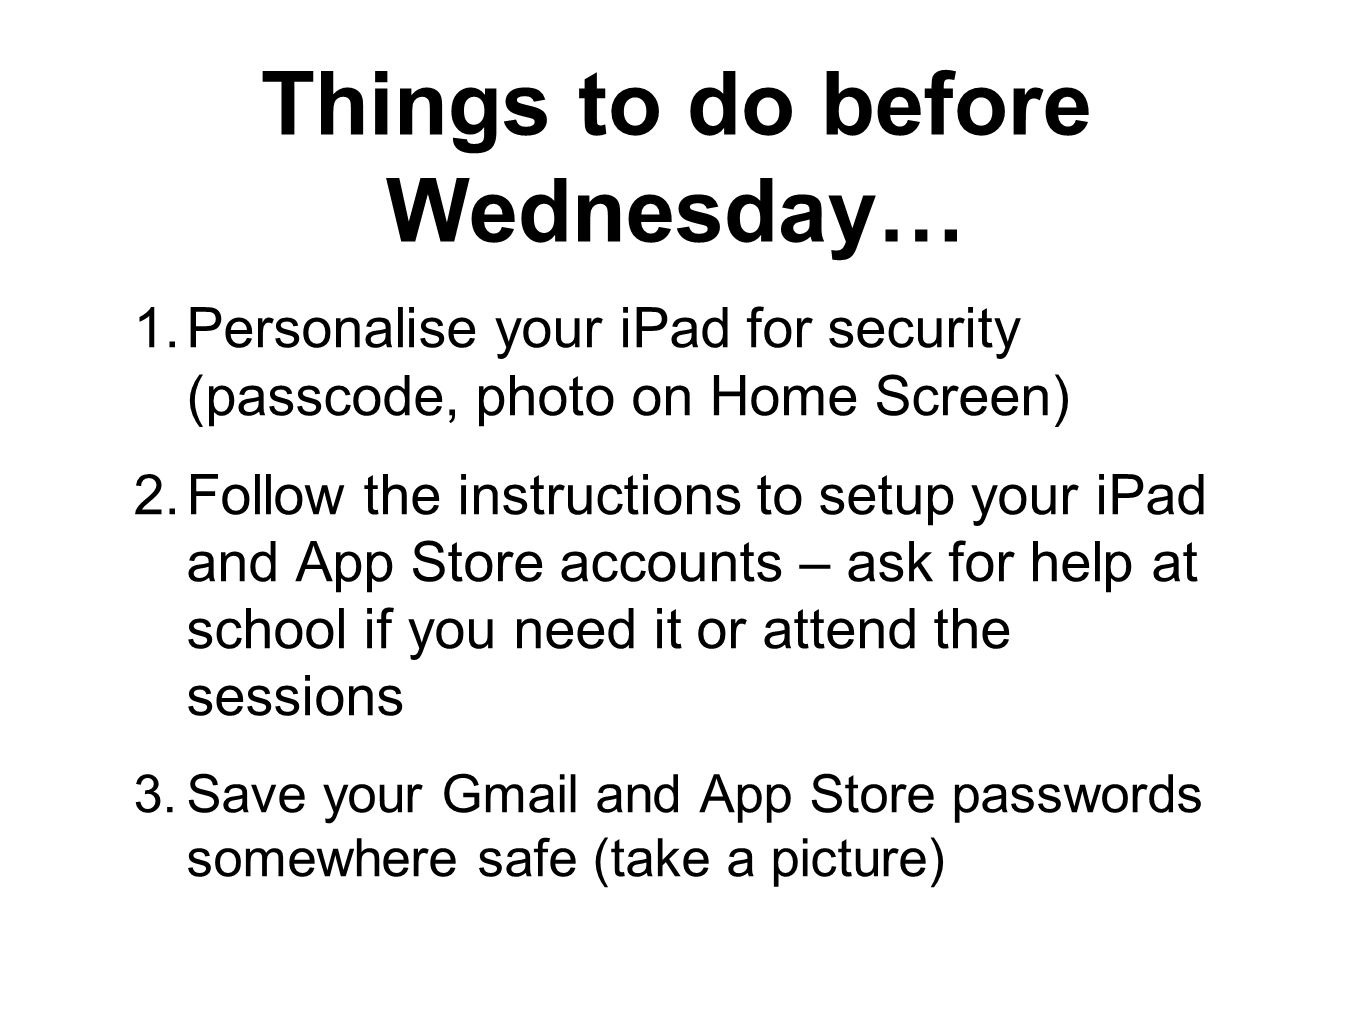 Things to do before Wednesday… 1.Personalise your iPad for security (passcode, photo on Home Screen) 2.Follow the instructions to setup your iPad and App Store accounts – ask for help at school if you need it or attend the sessions 3.Save your Gmail and App Store passwords somewhere safe (take a picture)